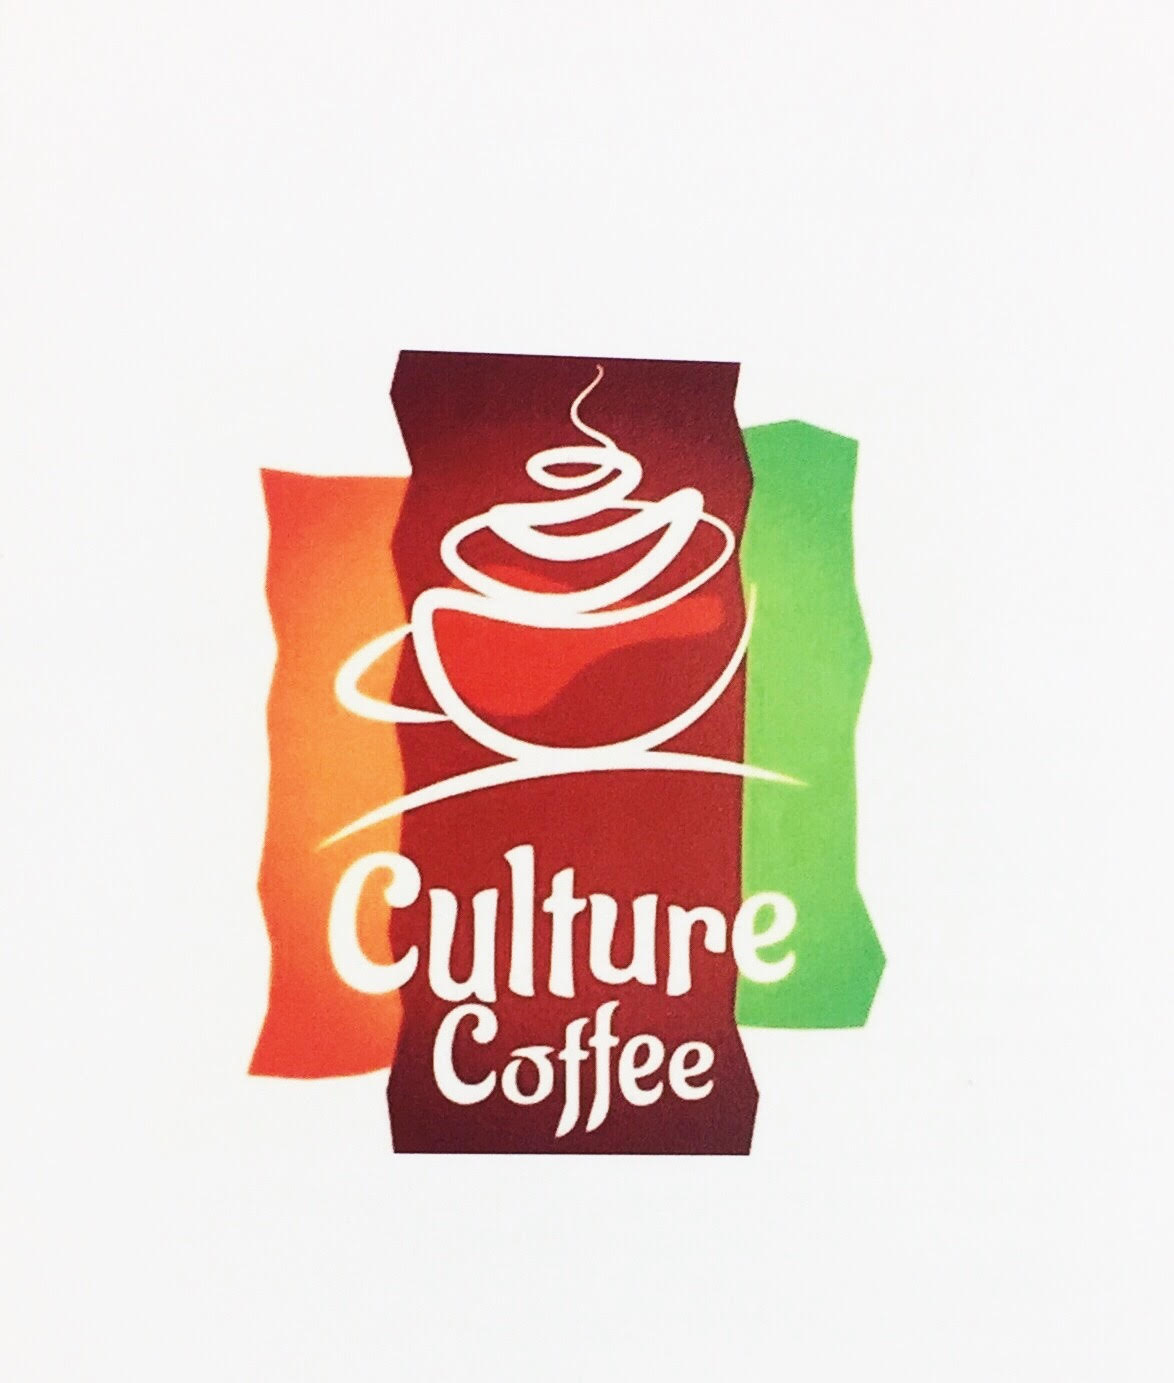 """Culture Coffee is a cafe, event venue, and art gallery with two locations in Washington D.C. with the """"mission of providing delicious coffee and diverse culture to the entire city."""" Culture Coffee provides a creative and educational space for local artists, students, or anyone looking to connect, express, or share information. This space often hosts workshops,open mic nights, and donation based yoga, while the walls showcase the works of local artists. The also have a great menu, especially the delicious smoothies!  Instagram: culturecofffee"""